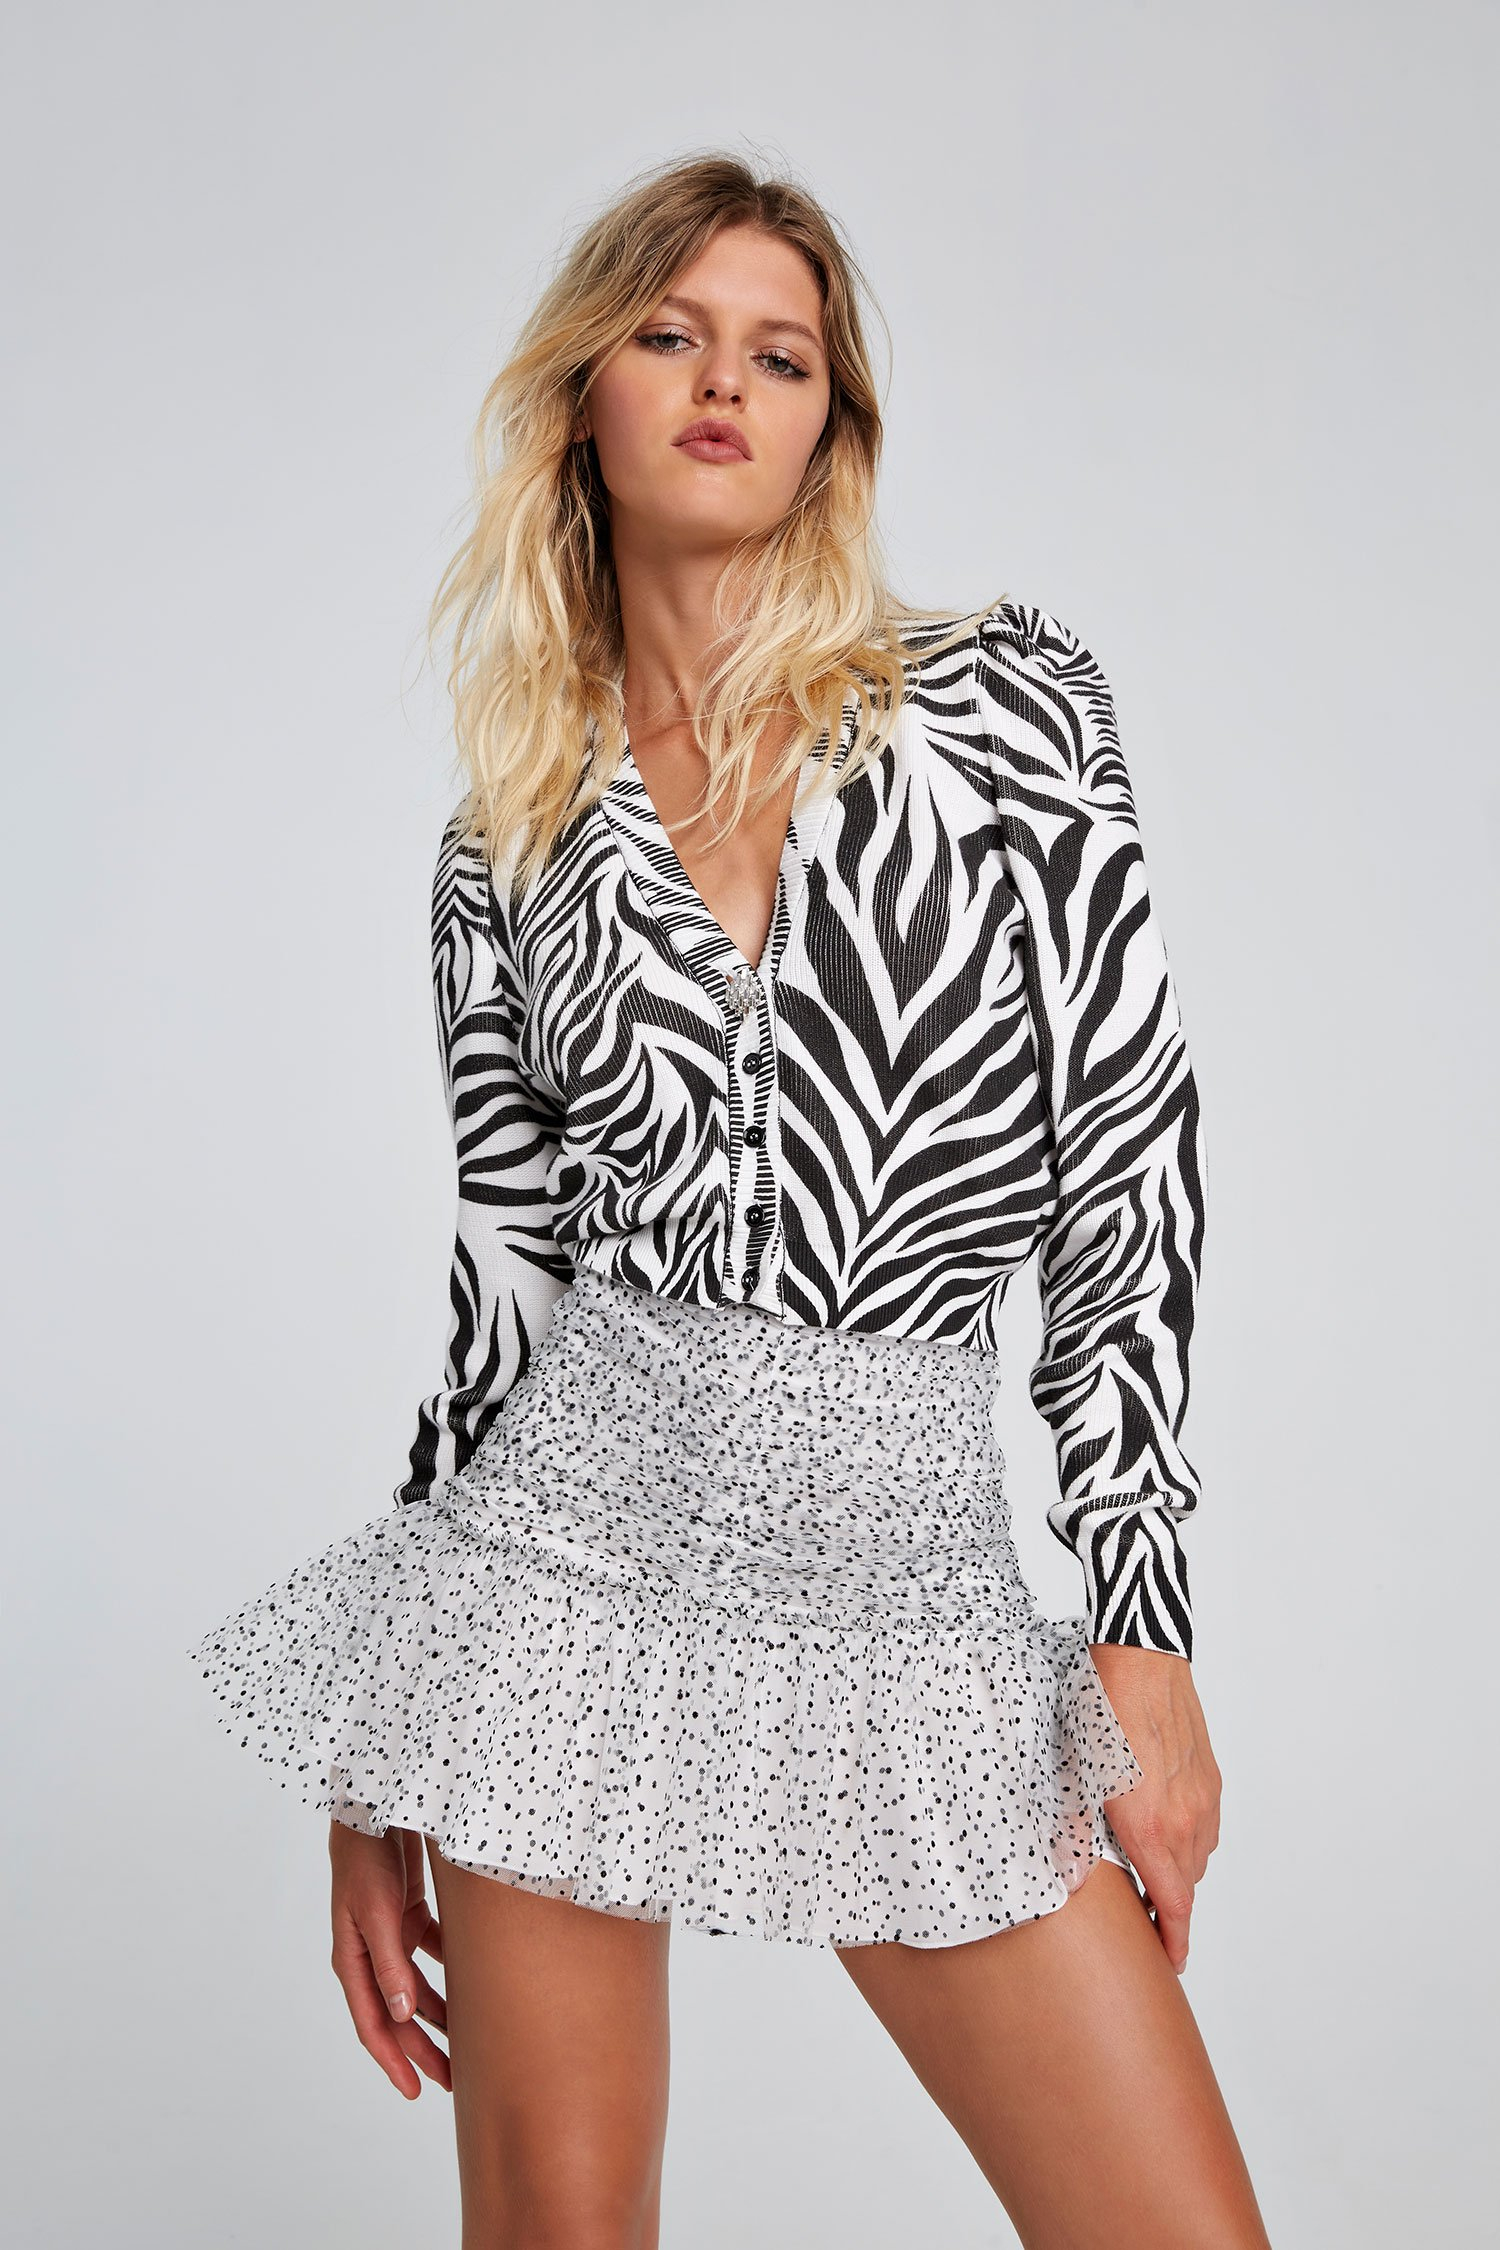 SHOPPING ON LINE ANIYE BY CARDIGAN STAMPA ZEBRA CON BOTTONE GIOIELLO  NEW COLLECTION WOMEN'S SPRING SUMMER 2021